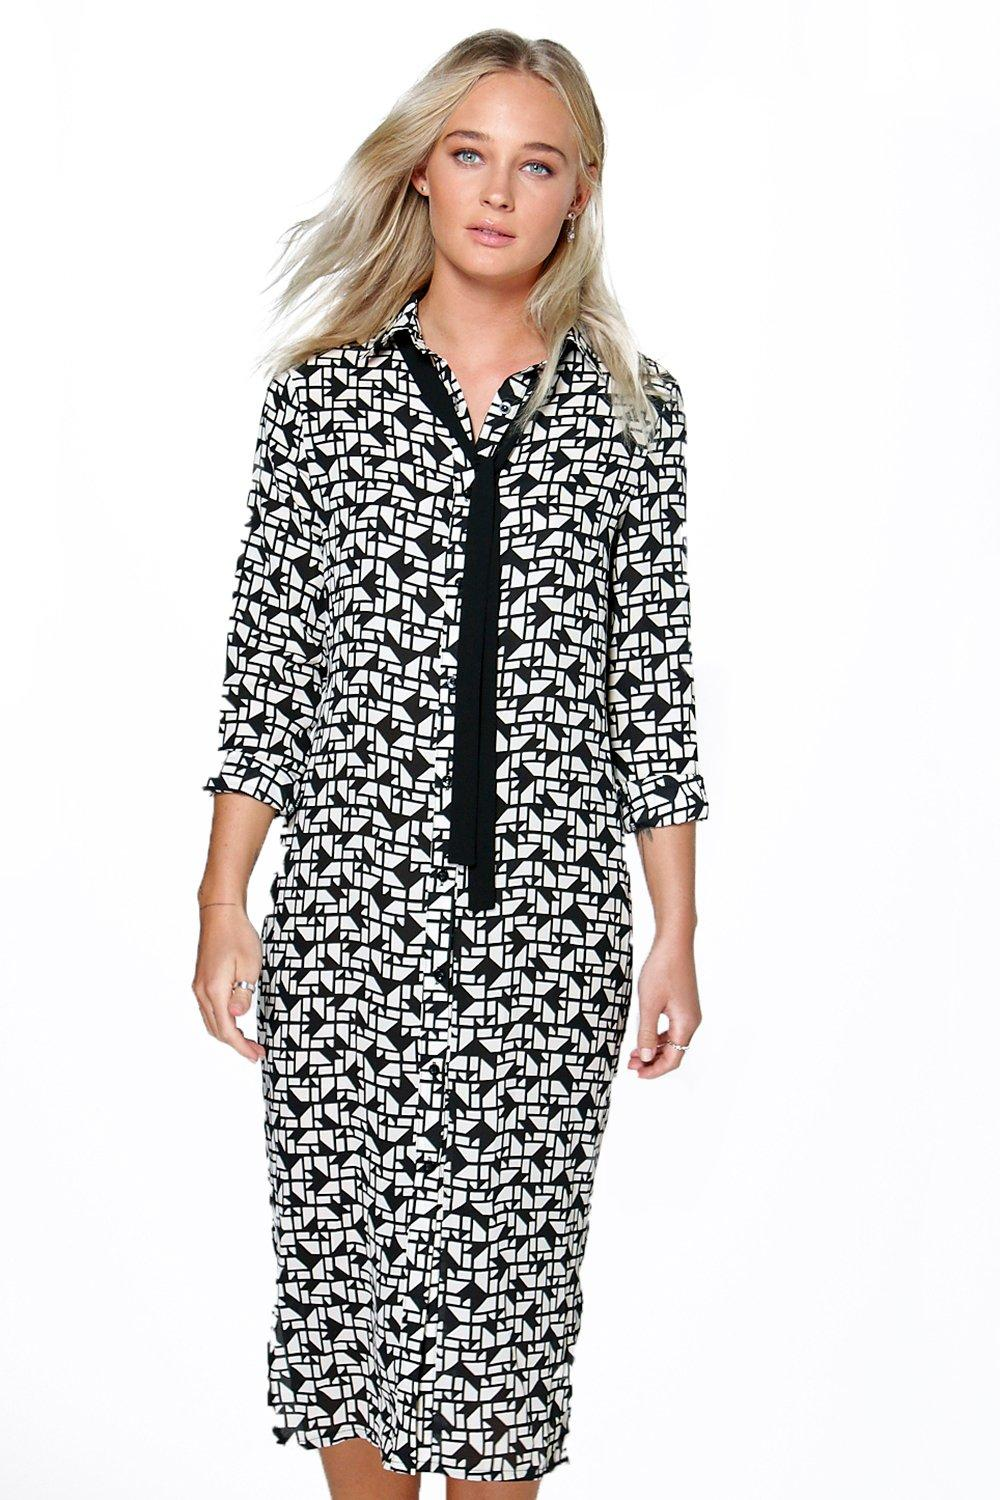 Eli Monochrome Geo Print Tie Neck Dress